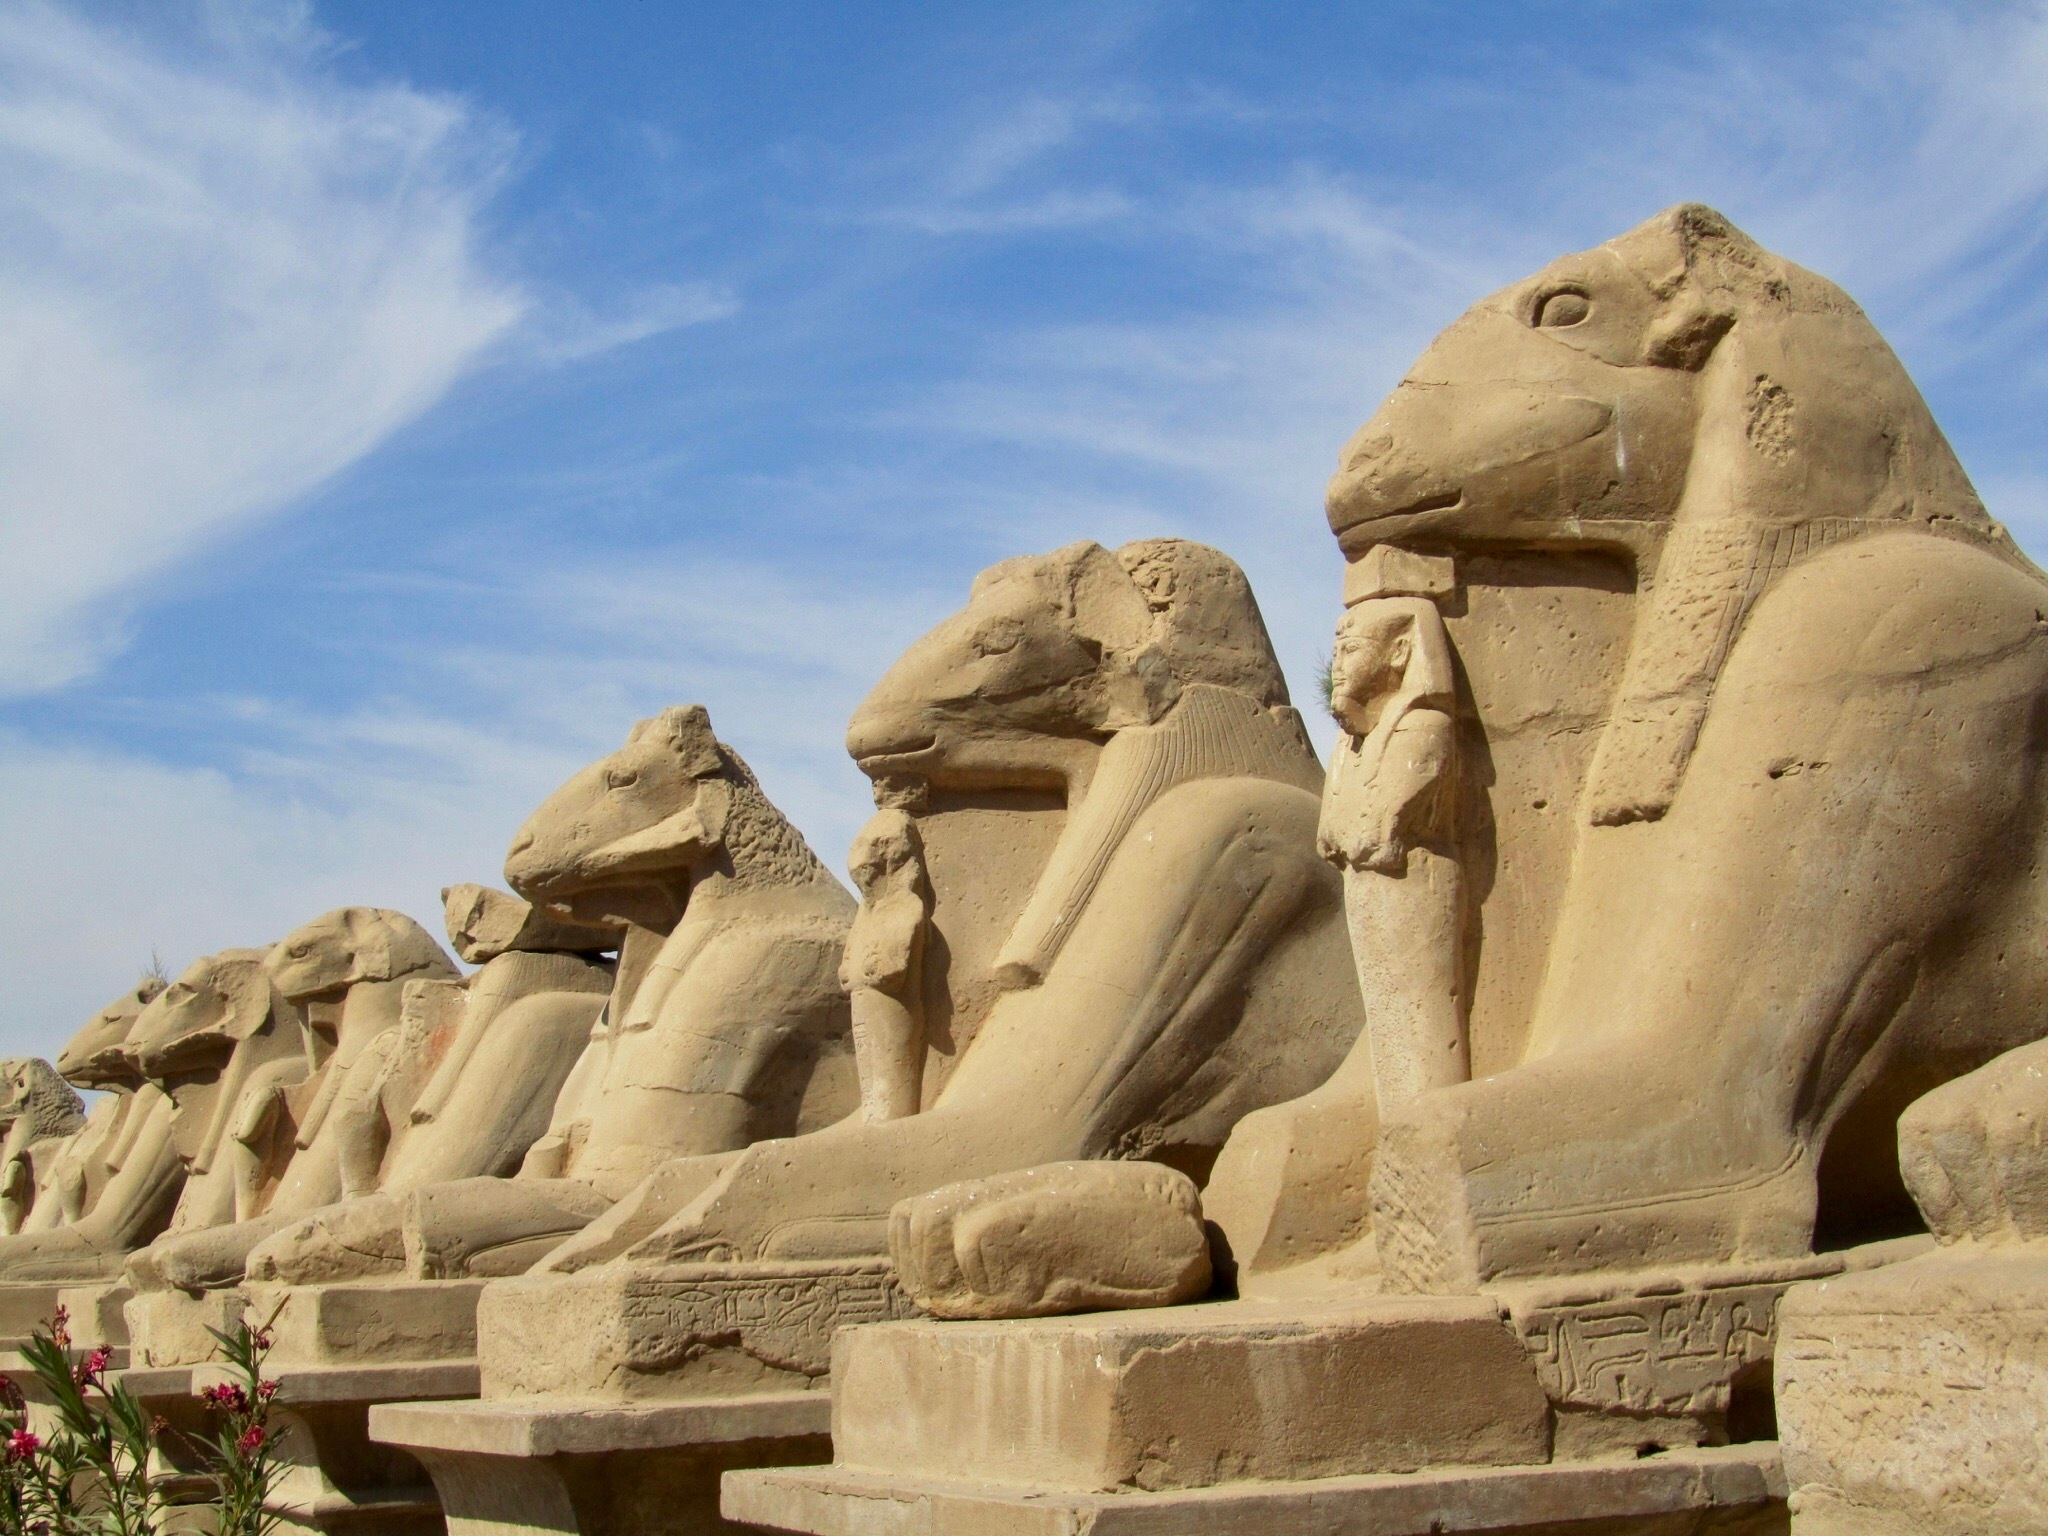 Welecome to Egypt.......Alkarnak temple. by Ashraf Younis